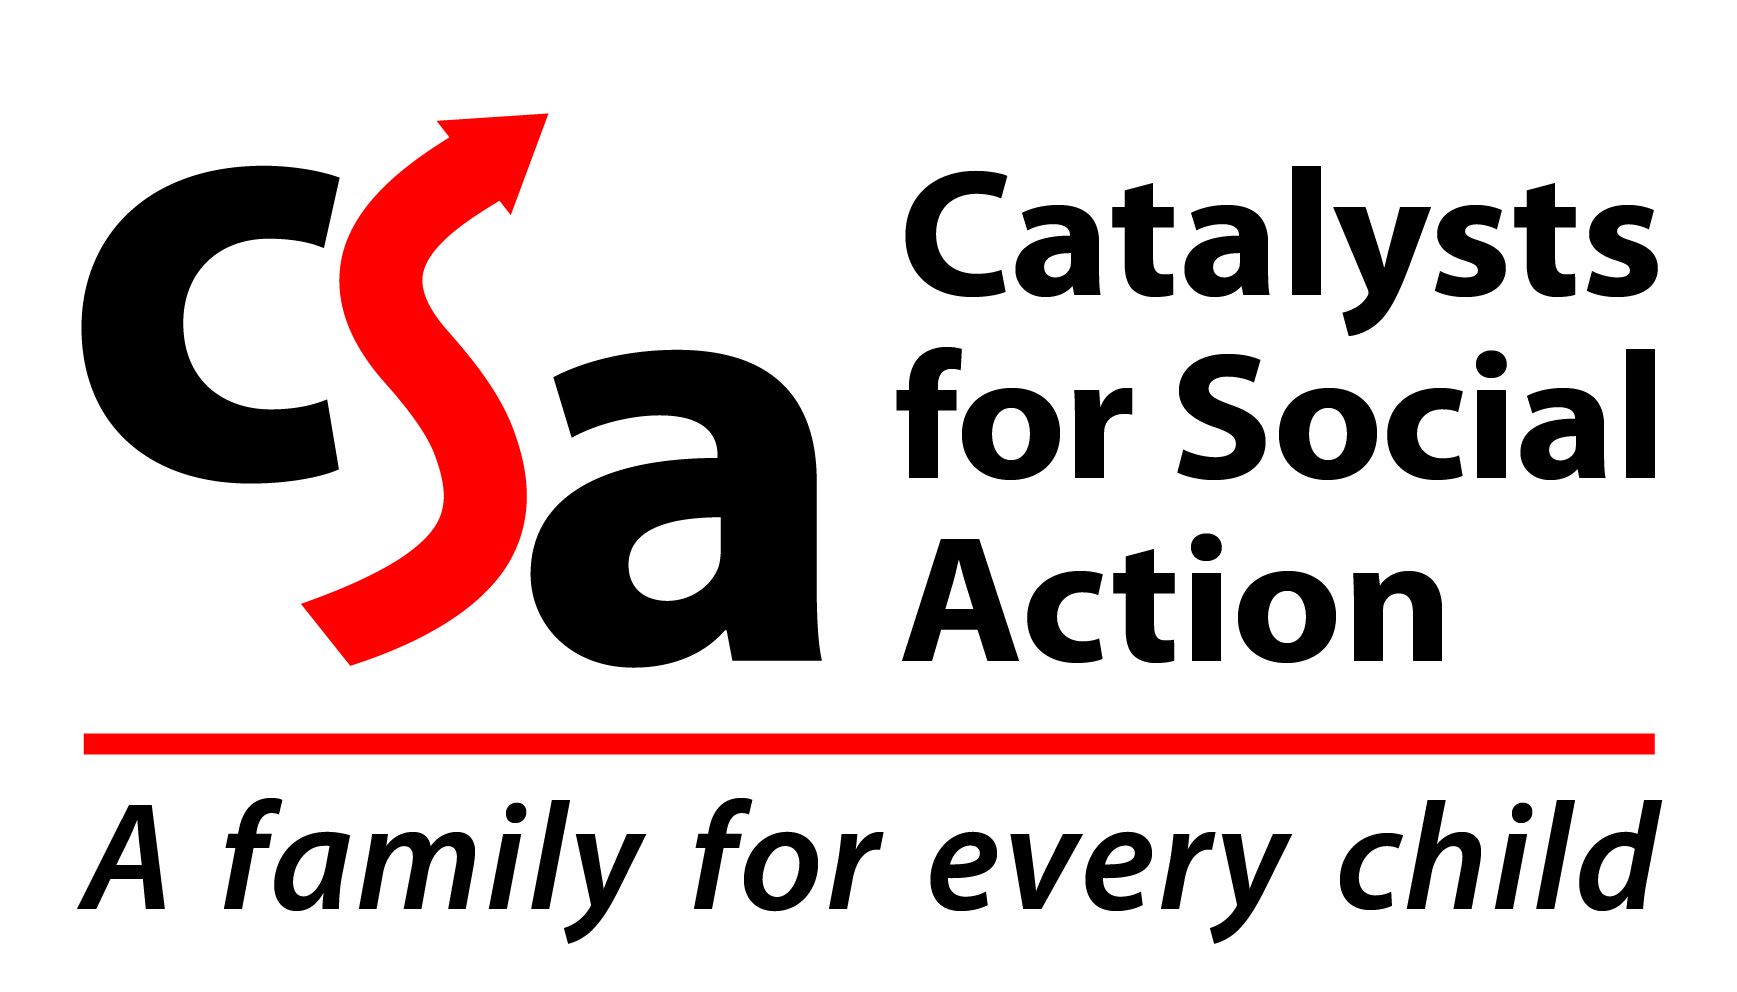 Catalysts for Social Action